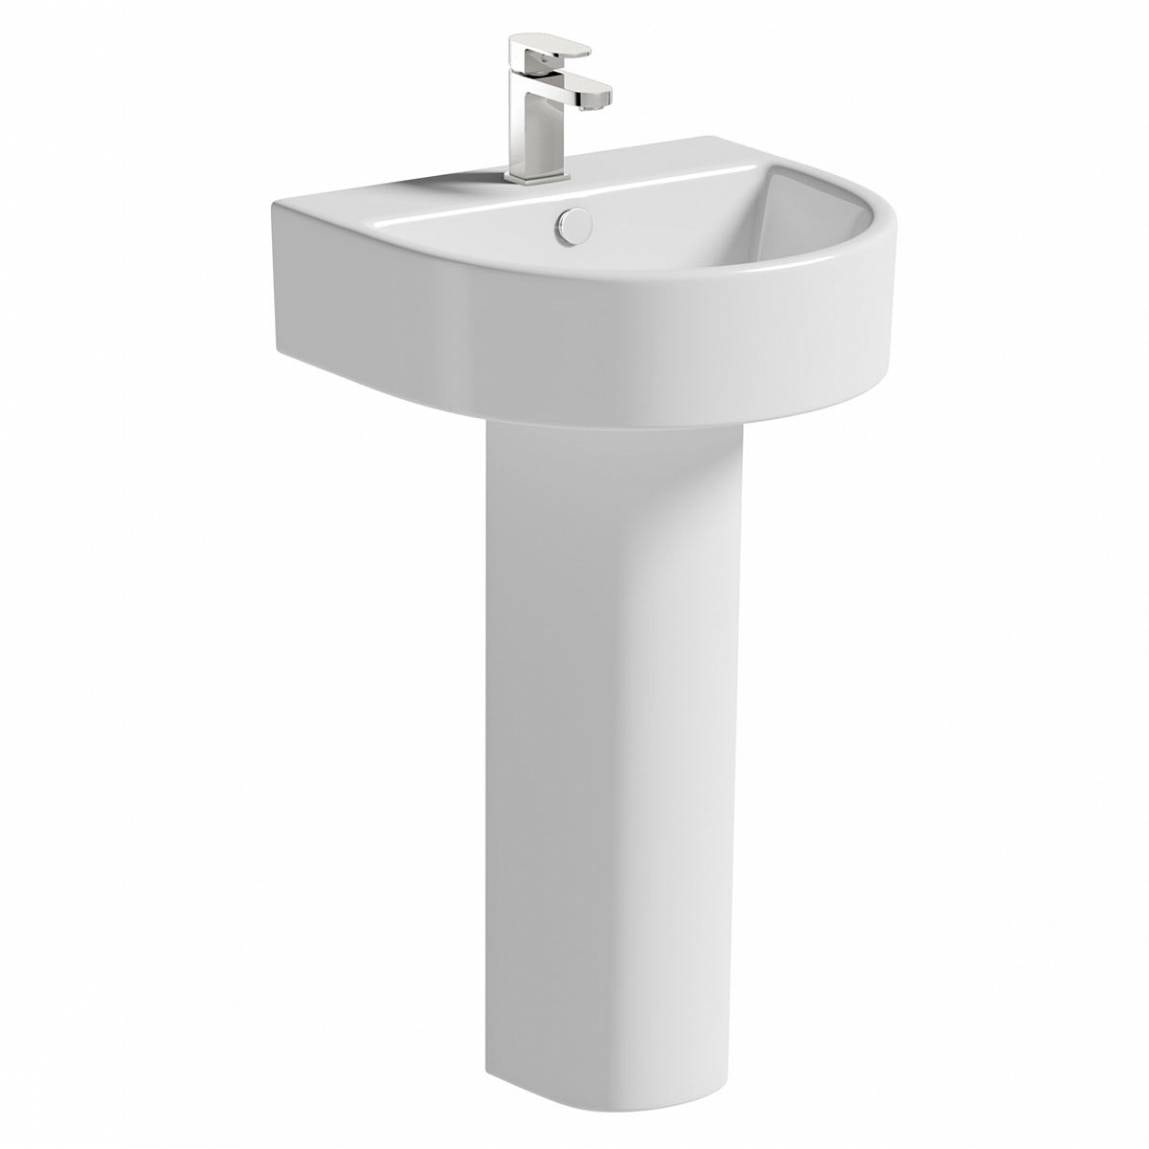 Orchard Dee 1 tap hole full pedestal basin 510mm